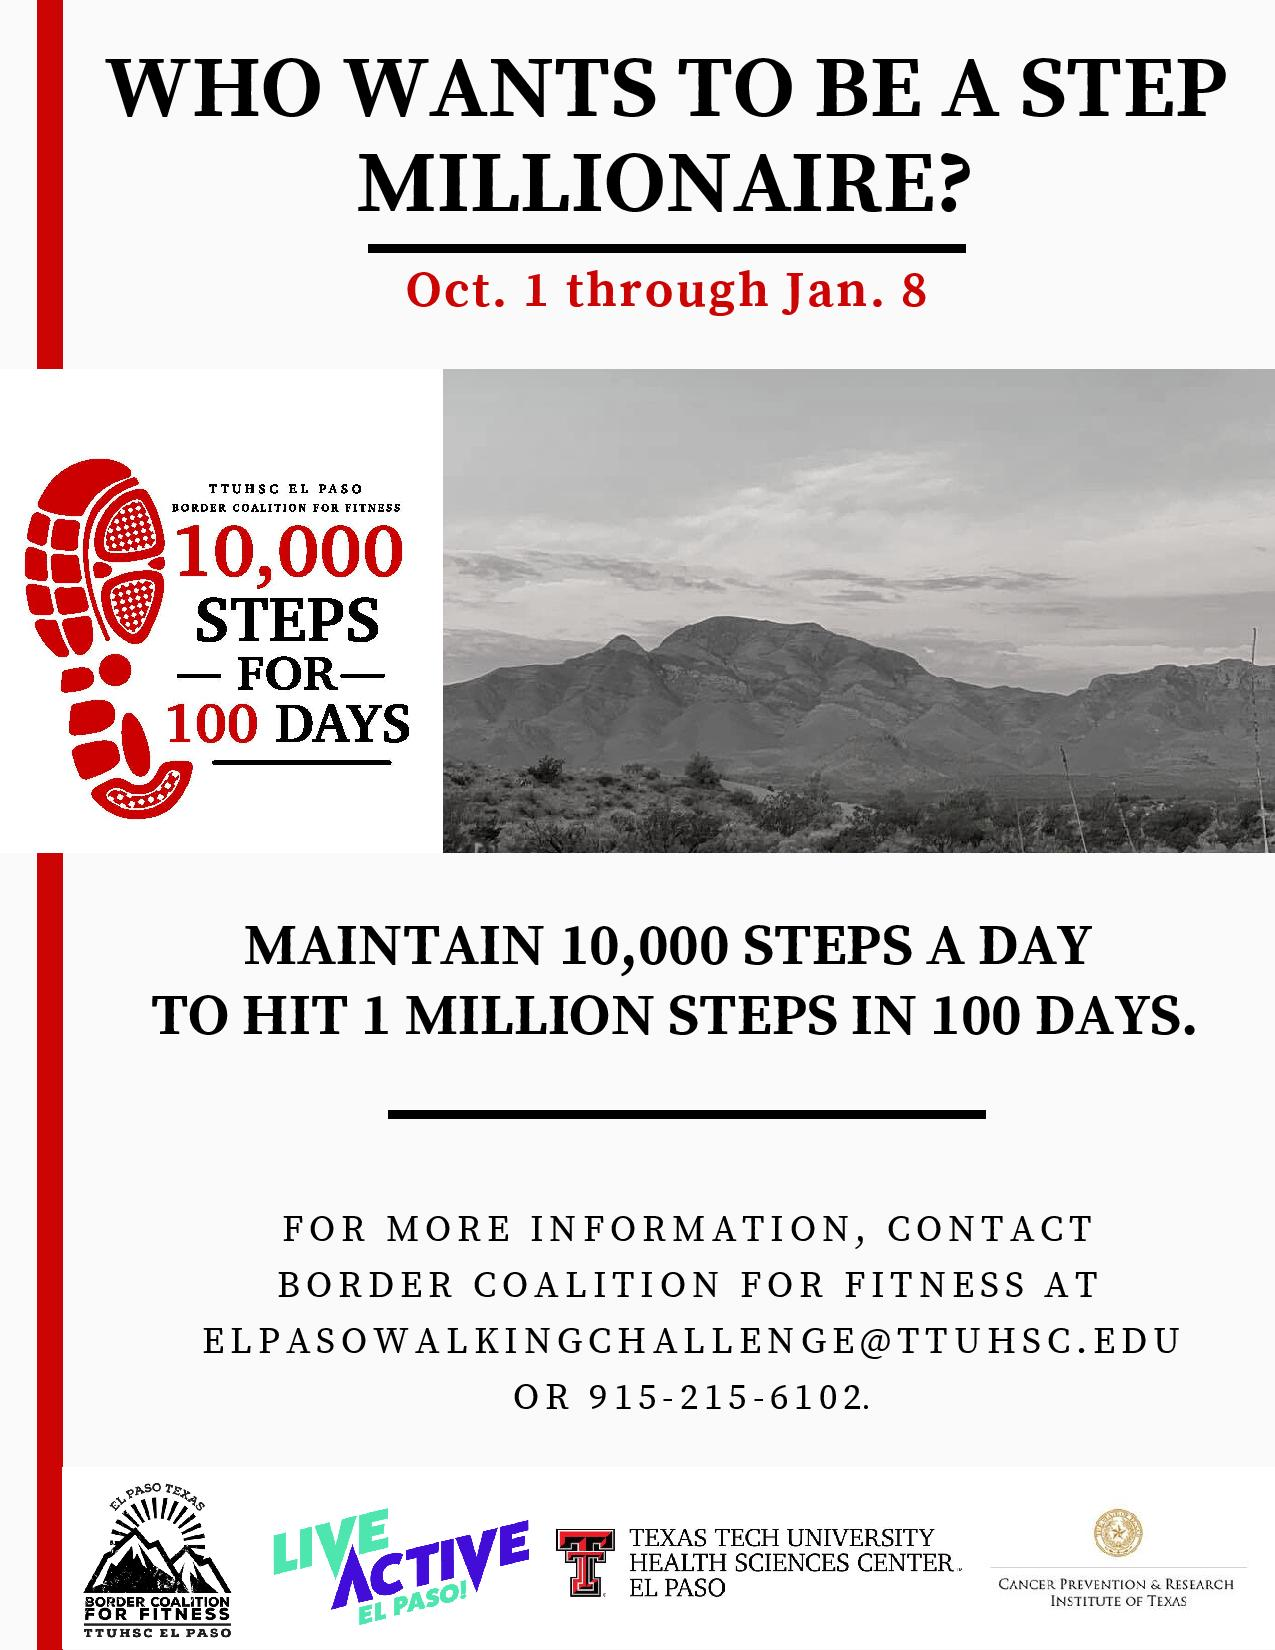 10,000 Steps for 100 Days - Oct. 1-Jan. 8